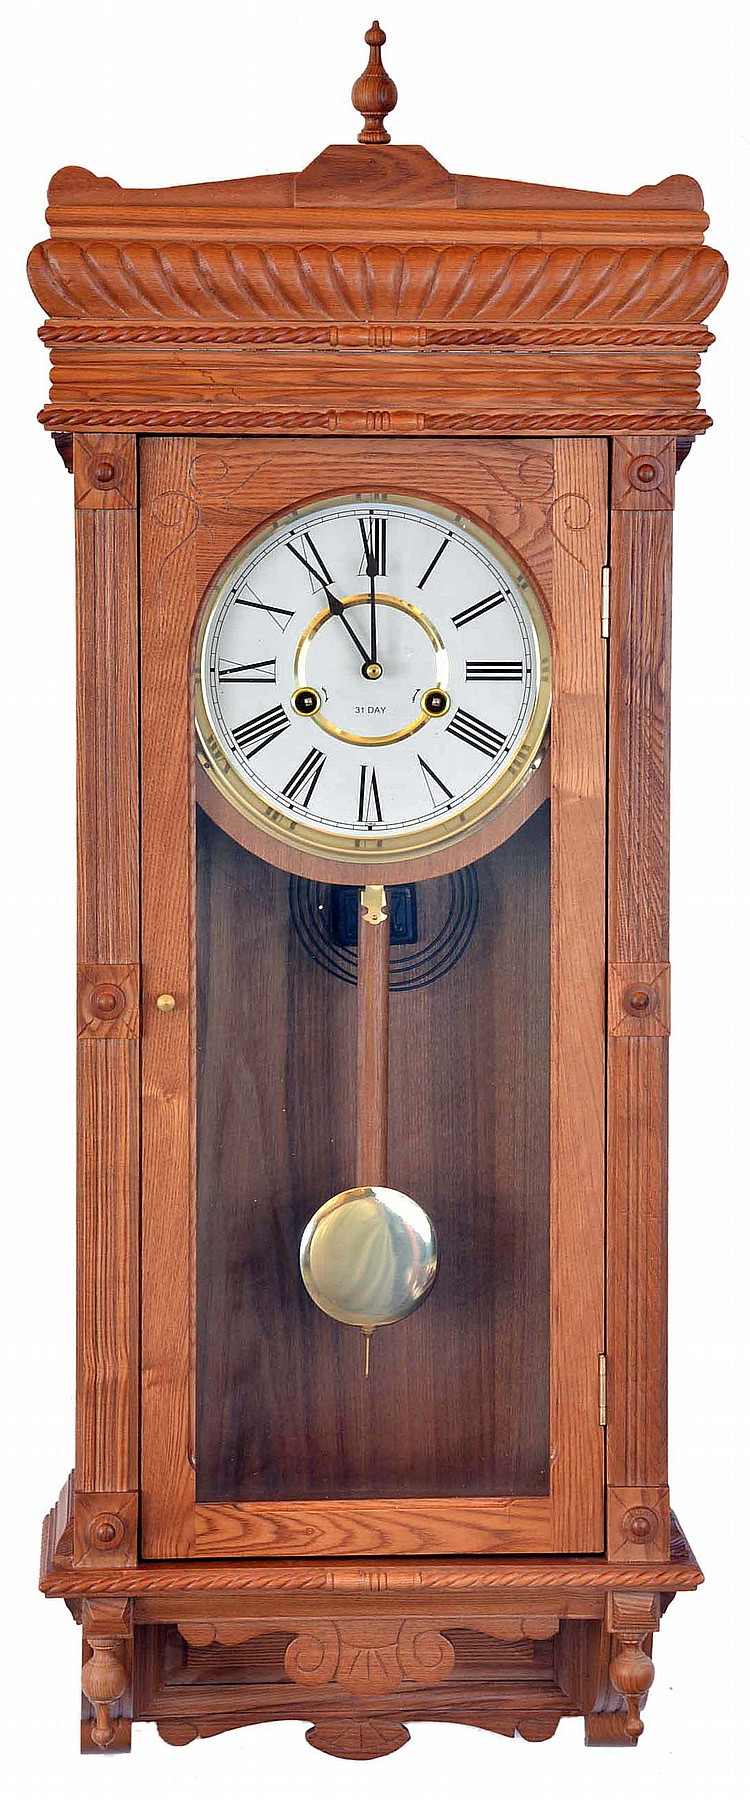 Clocks- 4 (Four): Clocks- 4 (Four): (1) Unmarked Baltimore style banjo reproduction wall clock with a spring driven movement in a wood case. c2000. (2) Unmarked reproduction of the Waterbury